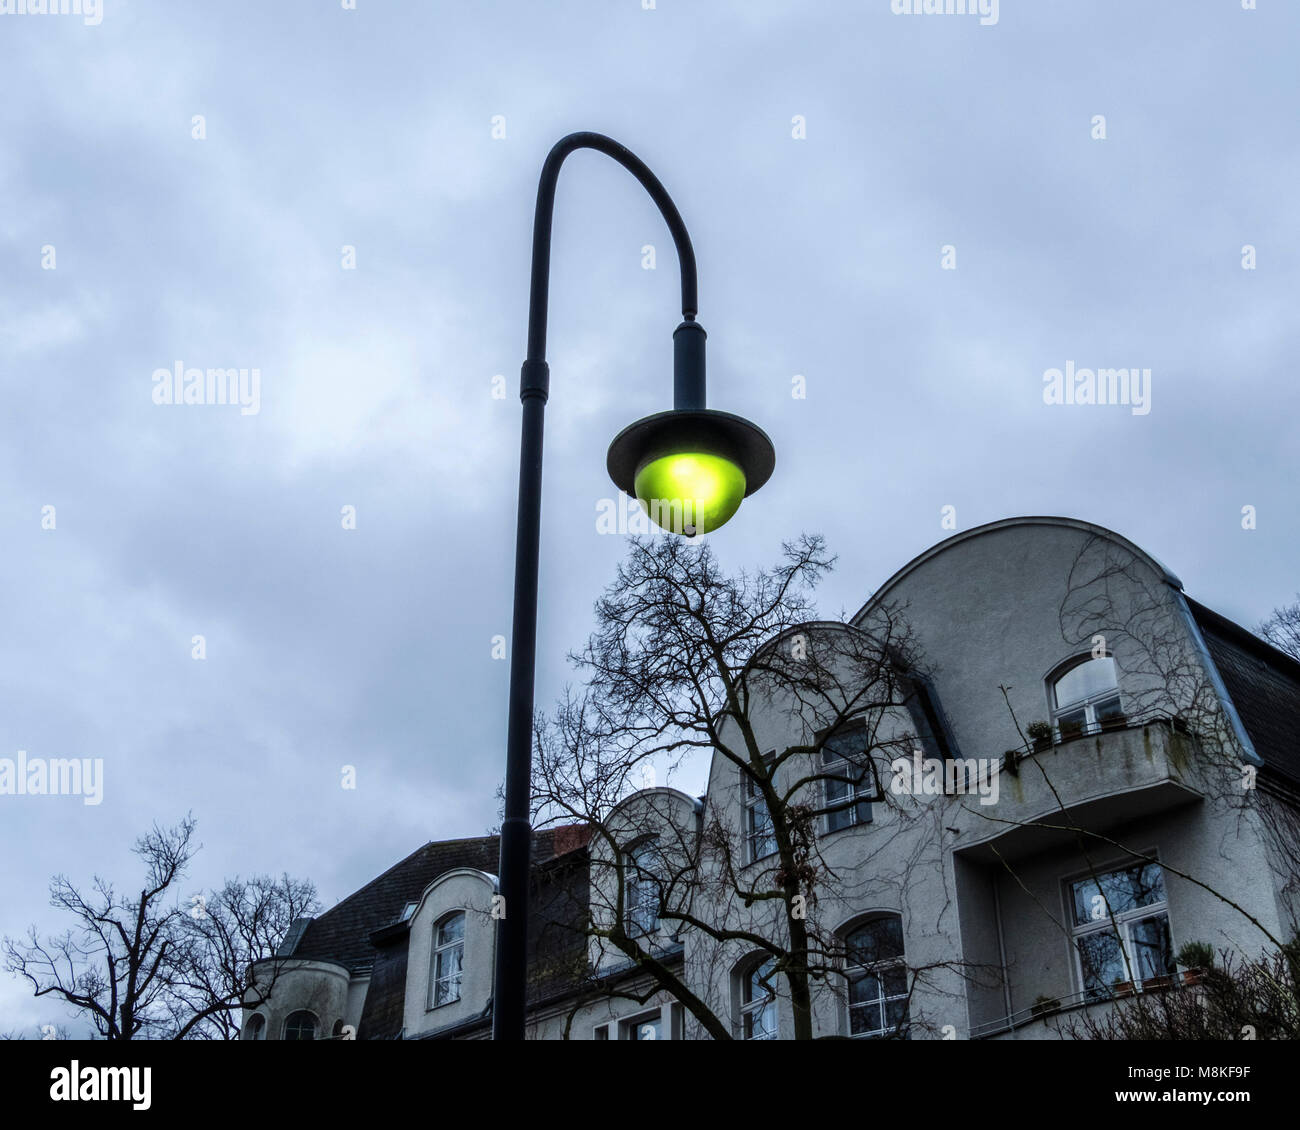 Berlin,Grunewald,Old street lighting, lamp post with yellow light in front of apartment building in suburbia - Stock Image